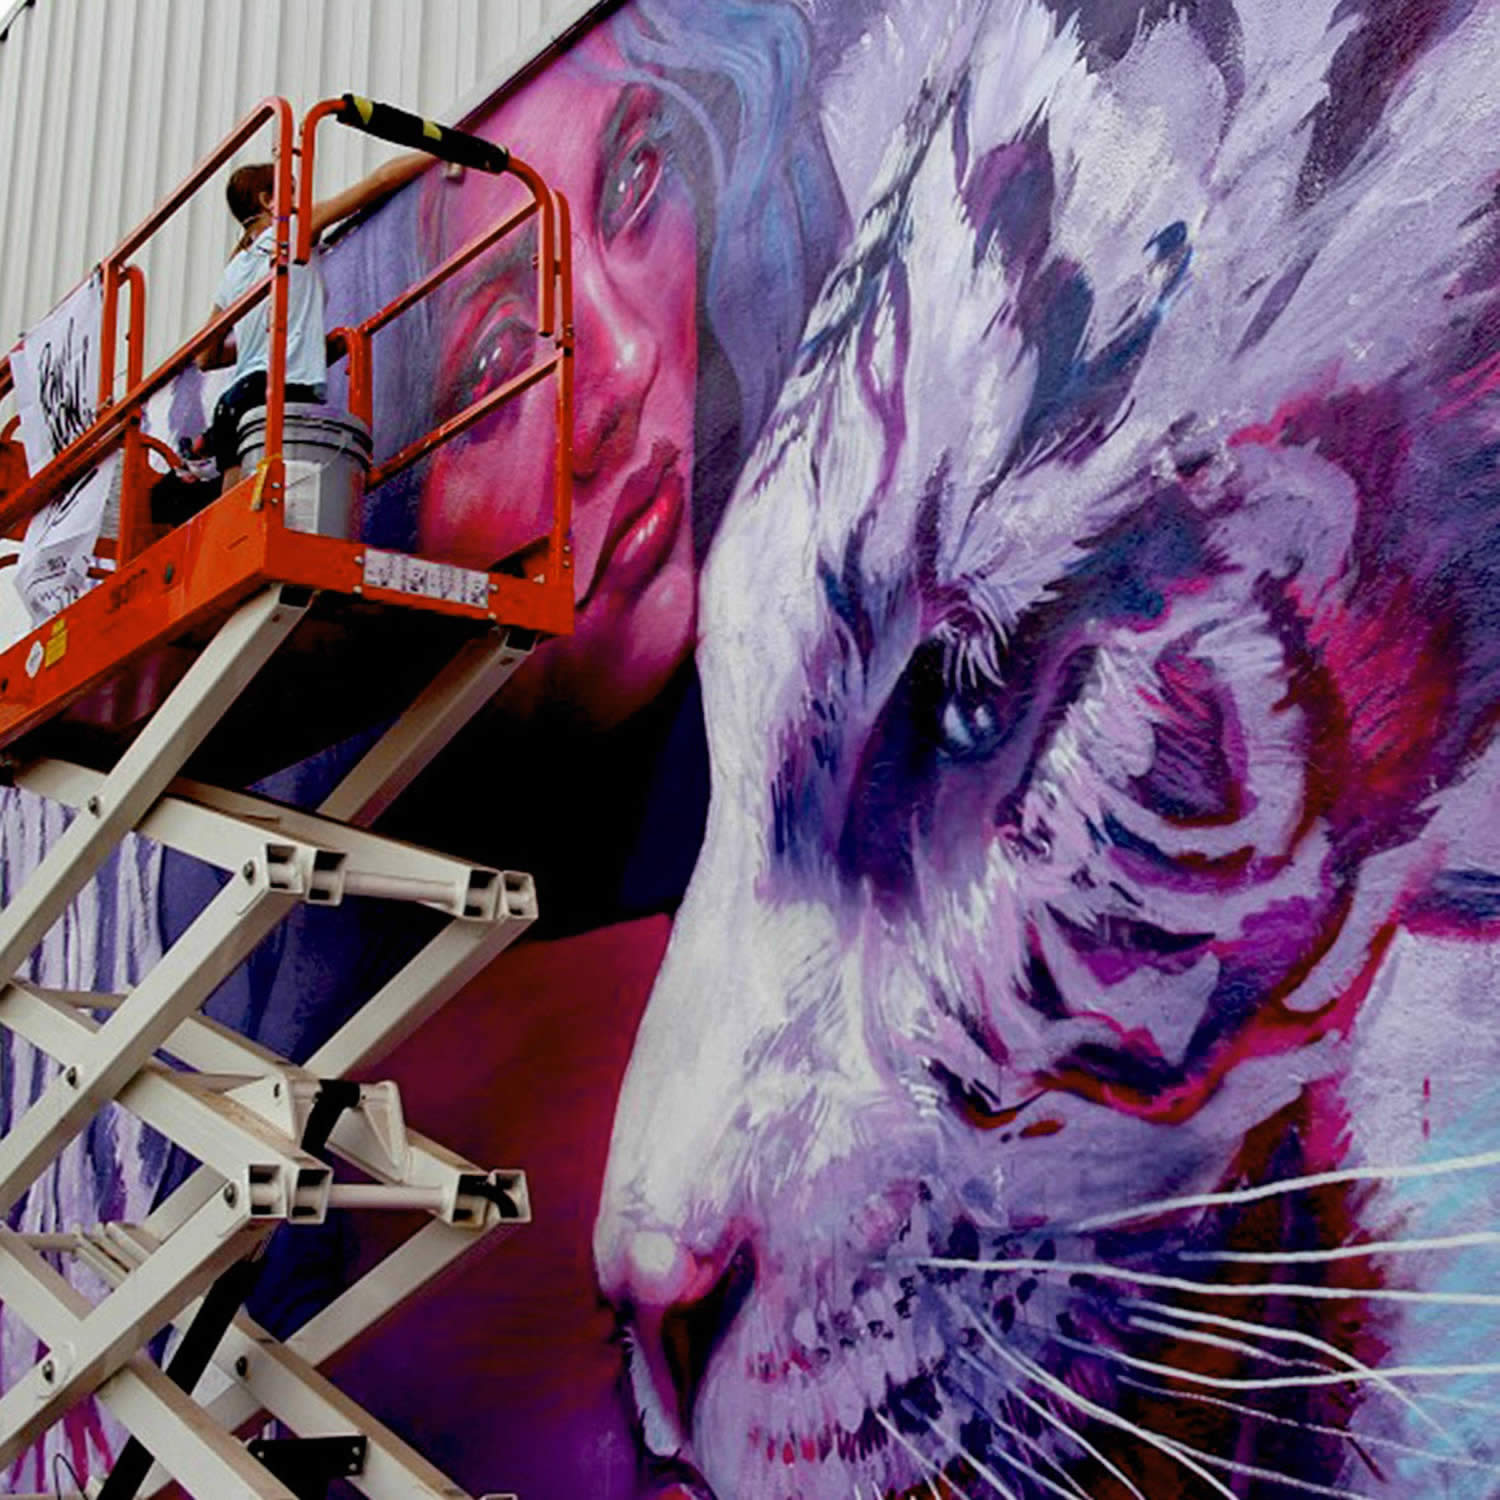 natalia rak working on a mural